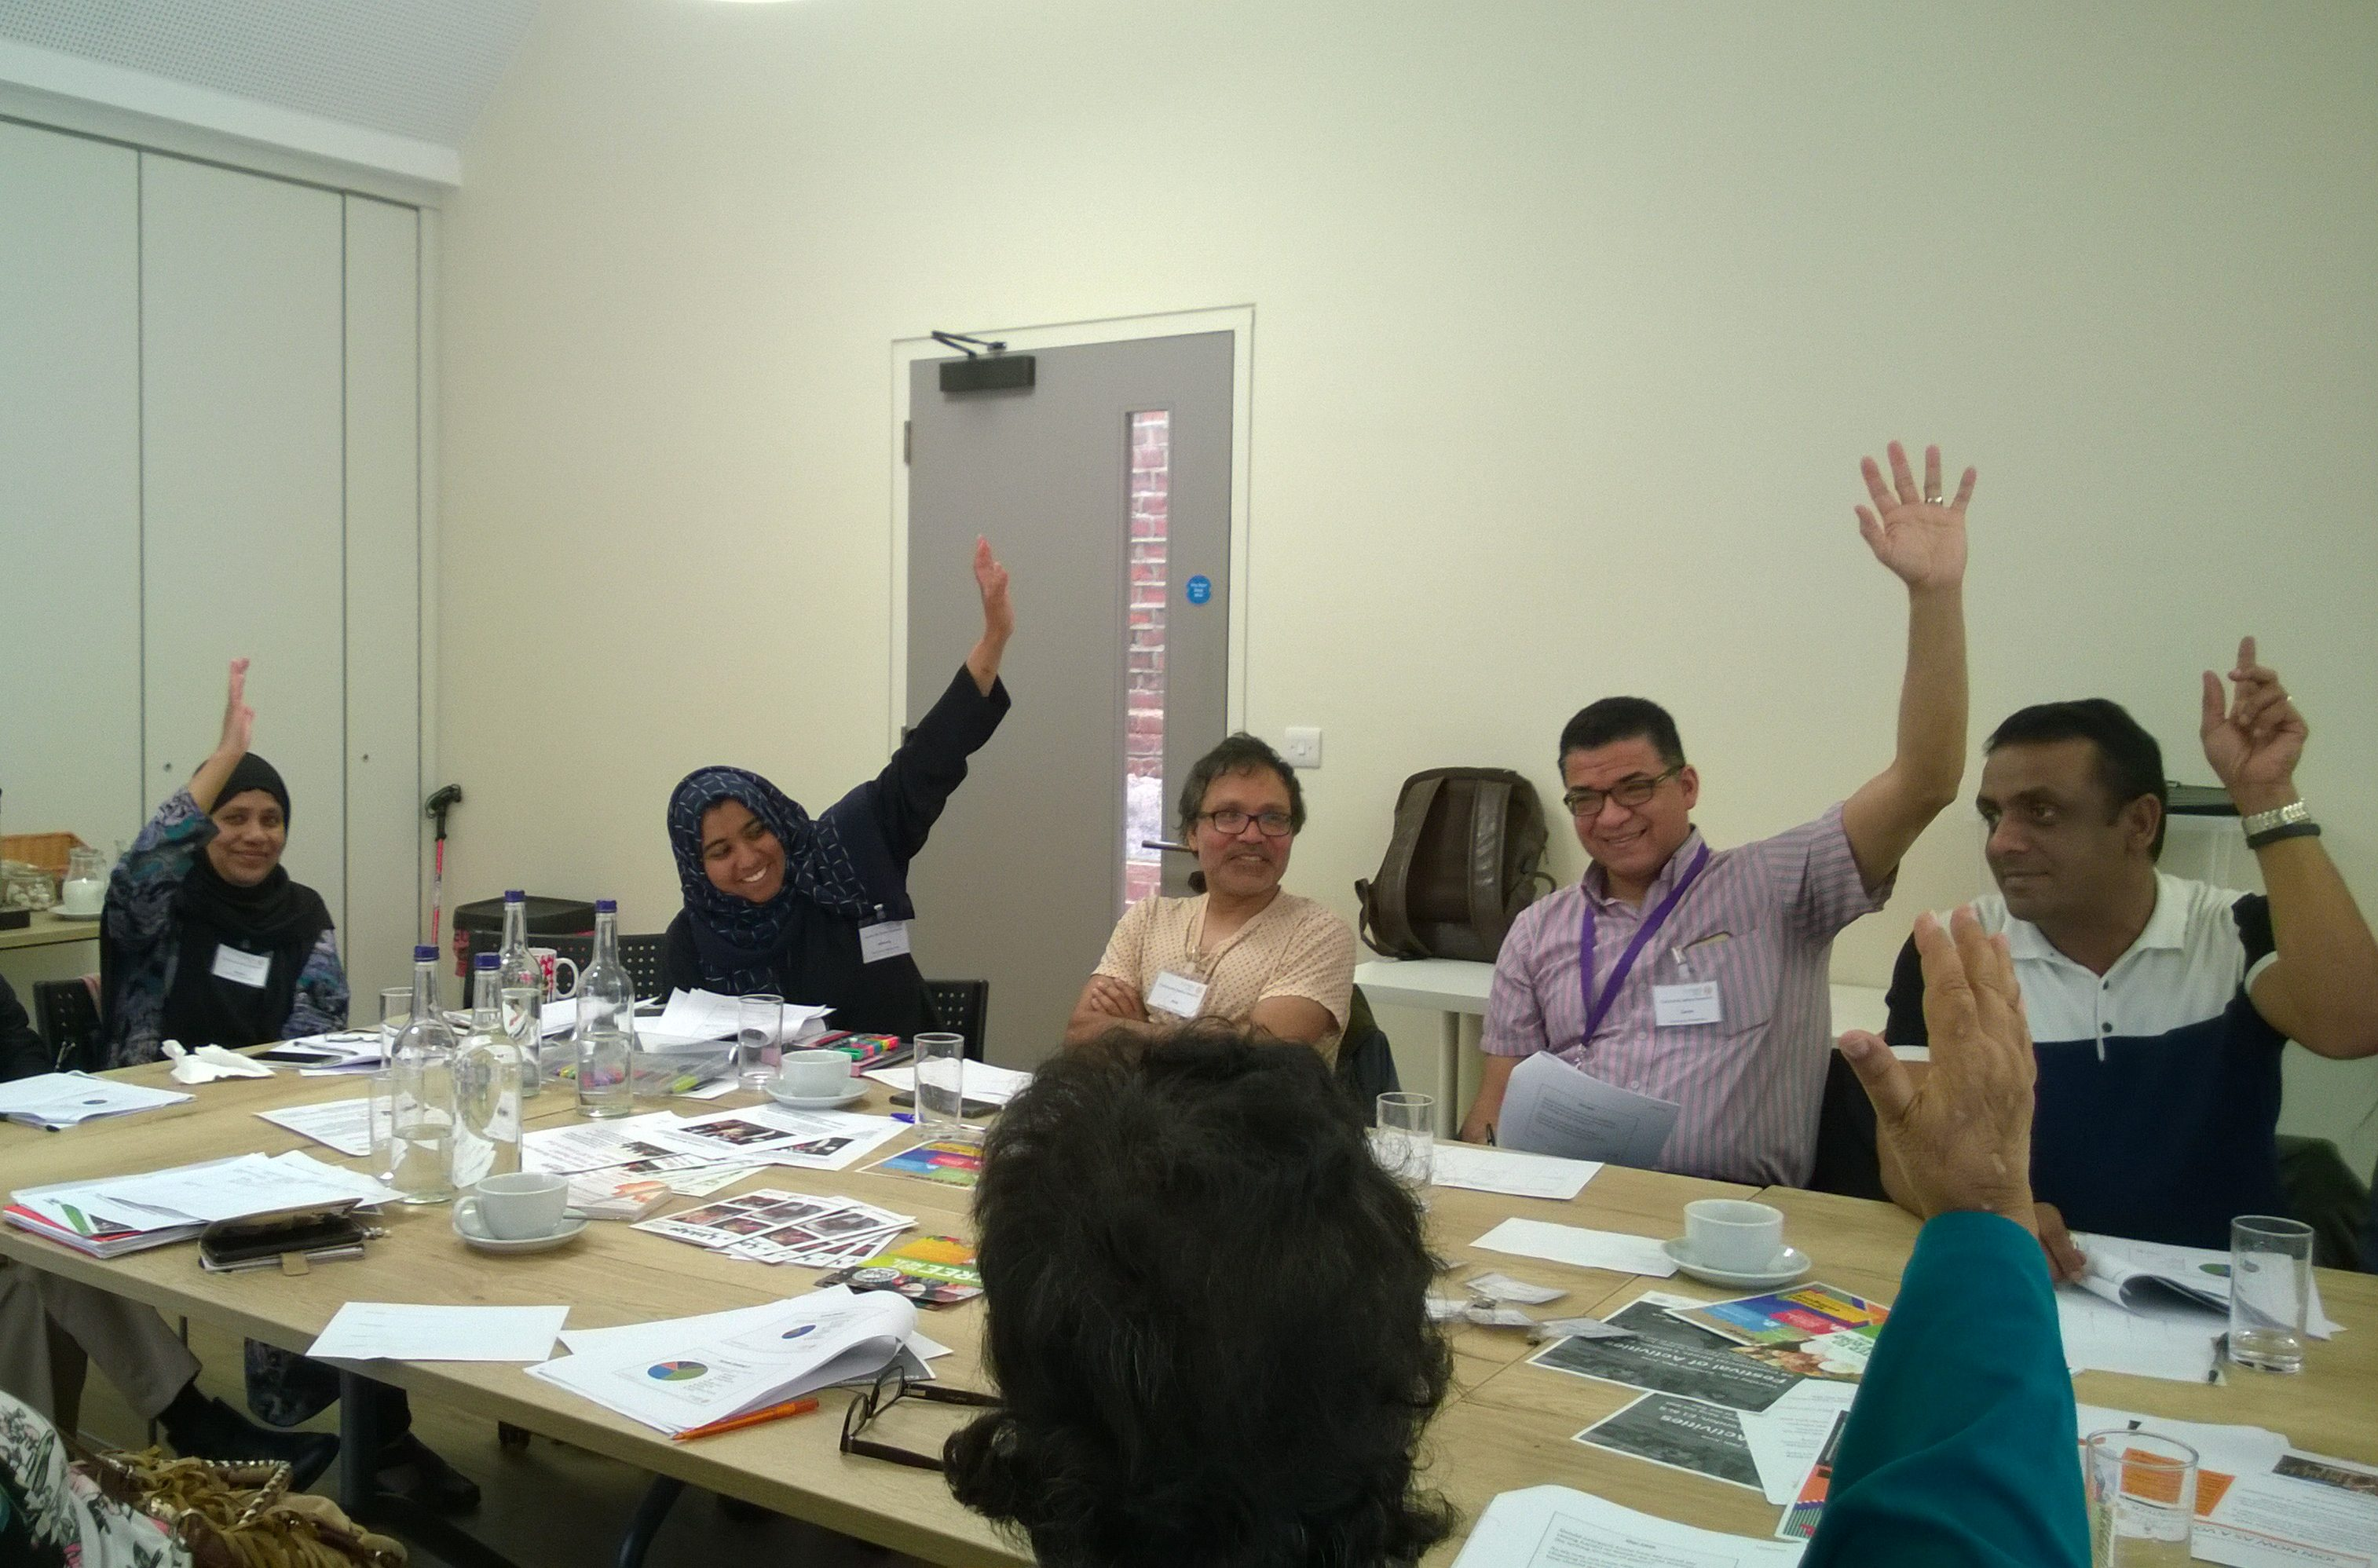 Community Research group decide to focus project on tackling anti-social behaviour